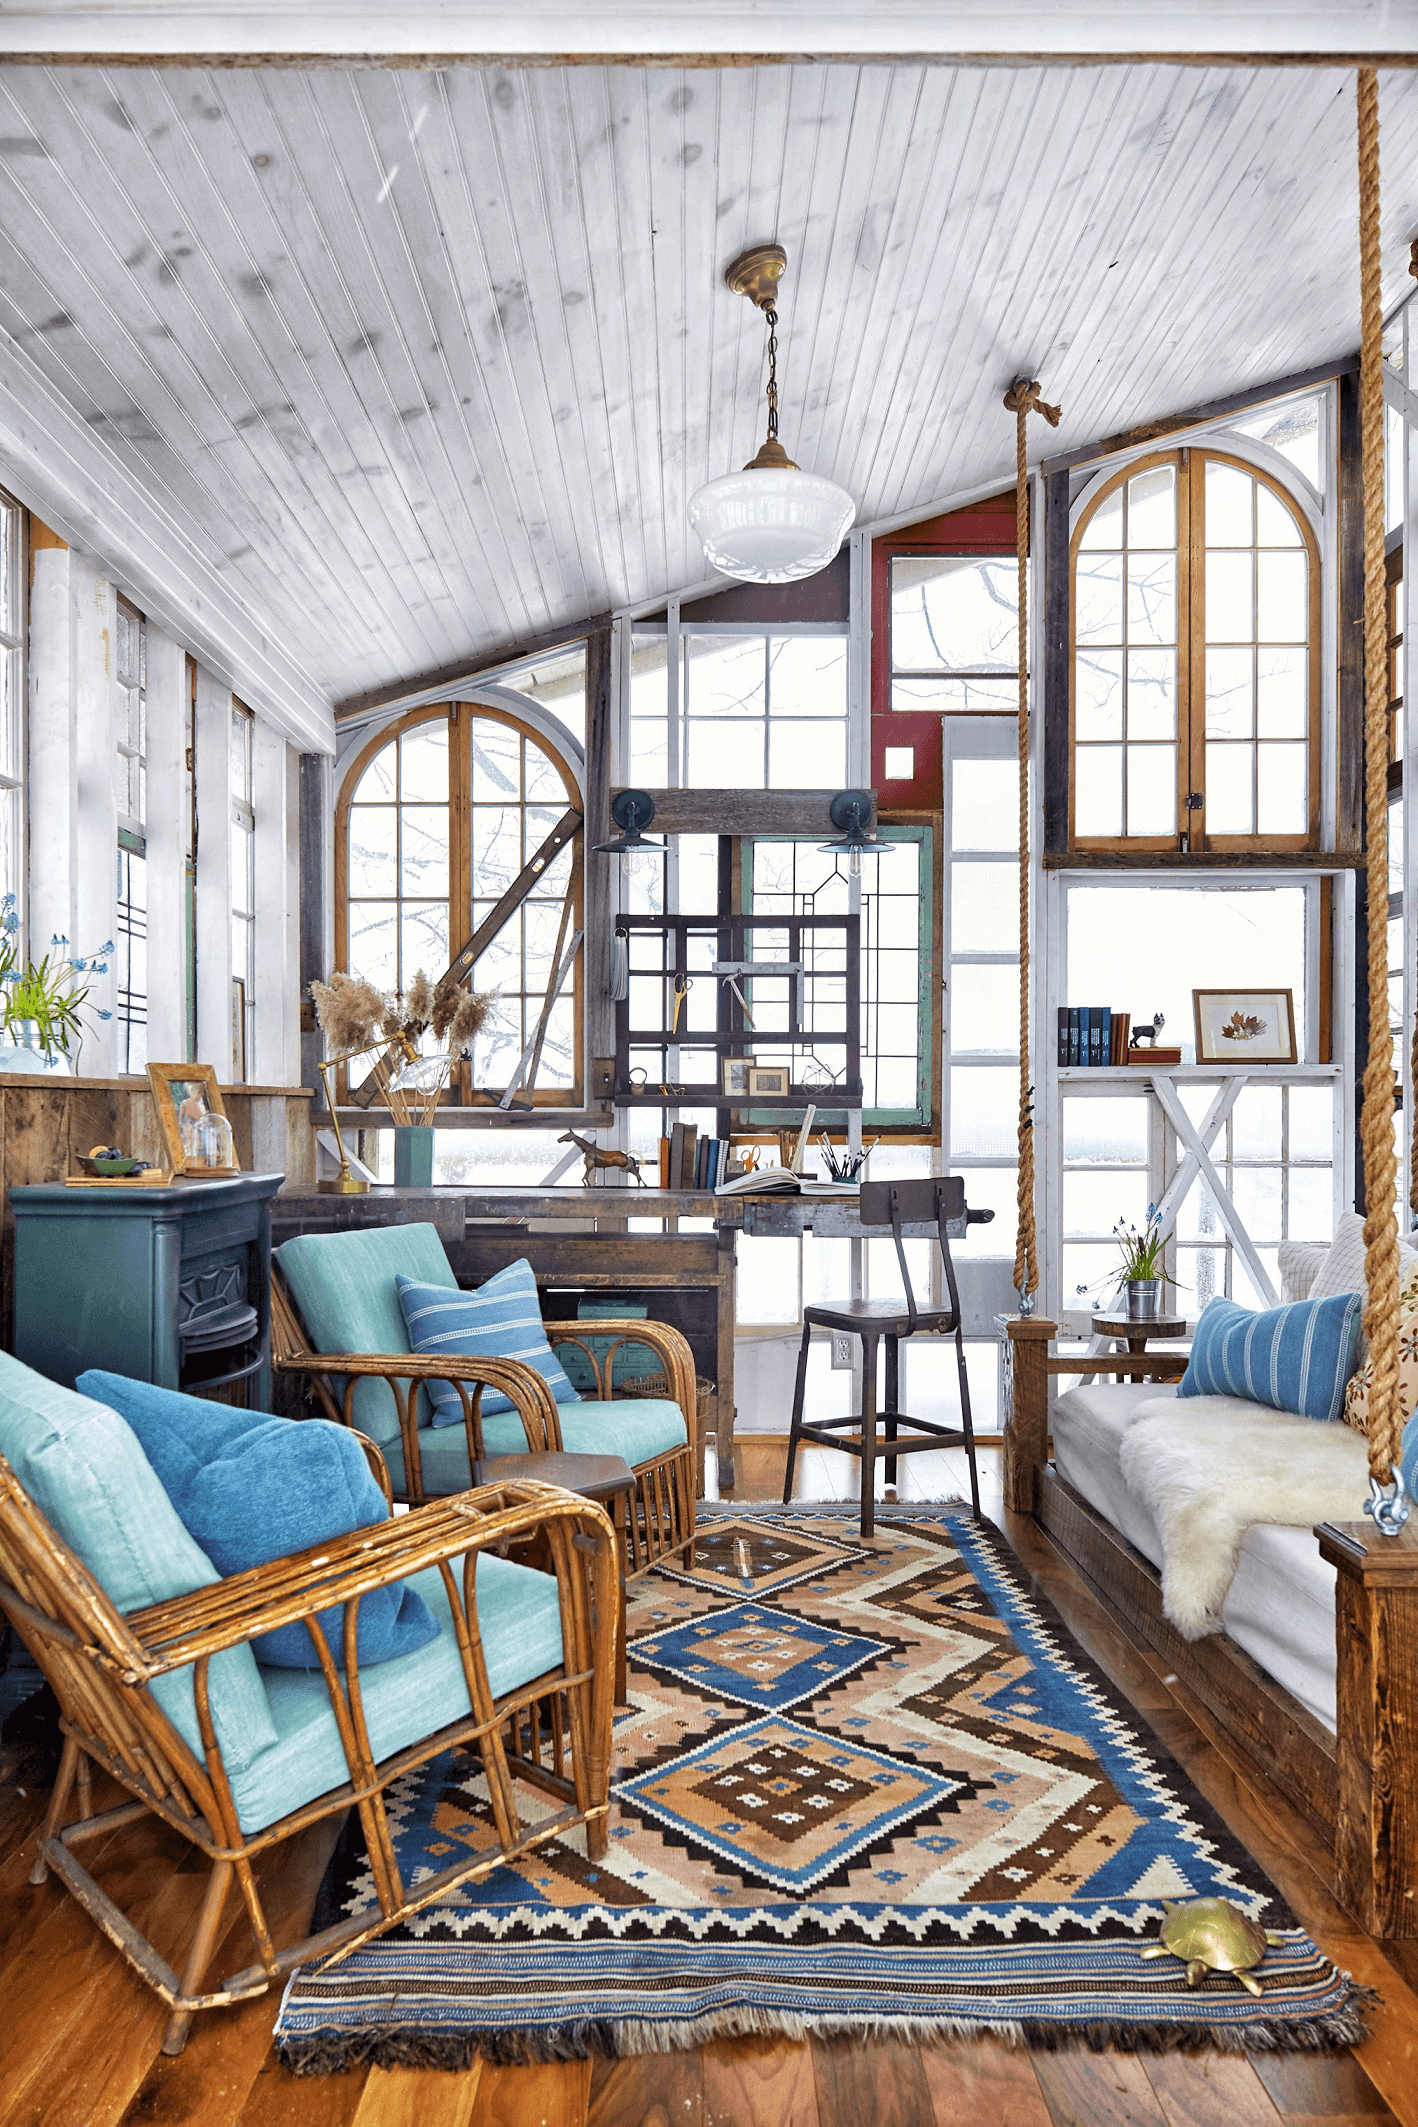 HOW TO MAKE TINY HOUSE LIVING ROOM LOOK BIGGER WITH PLAY PATTERNS